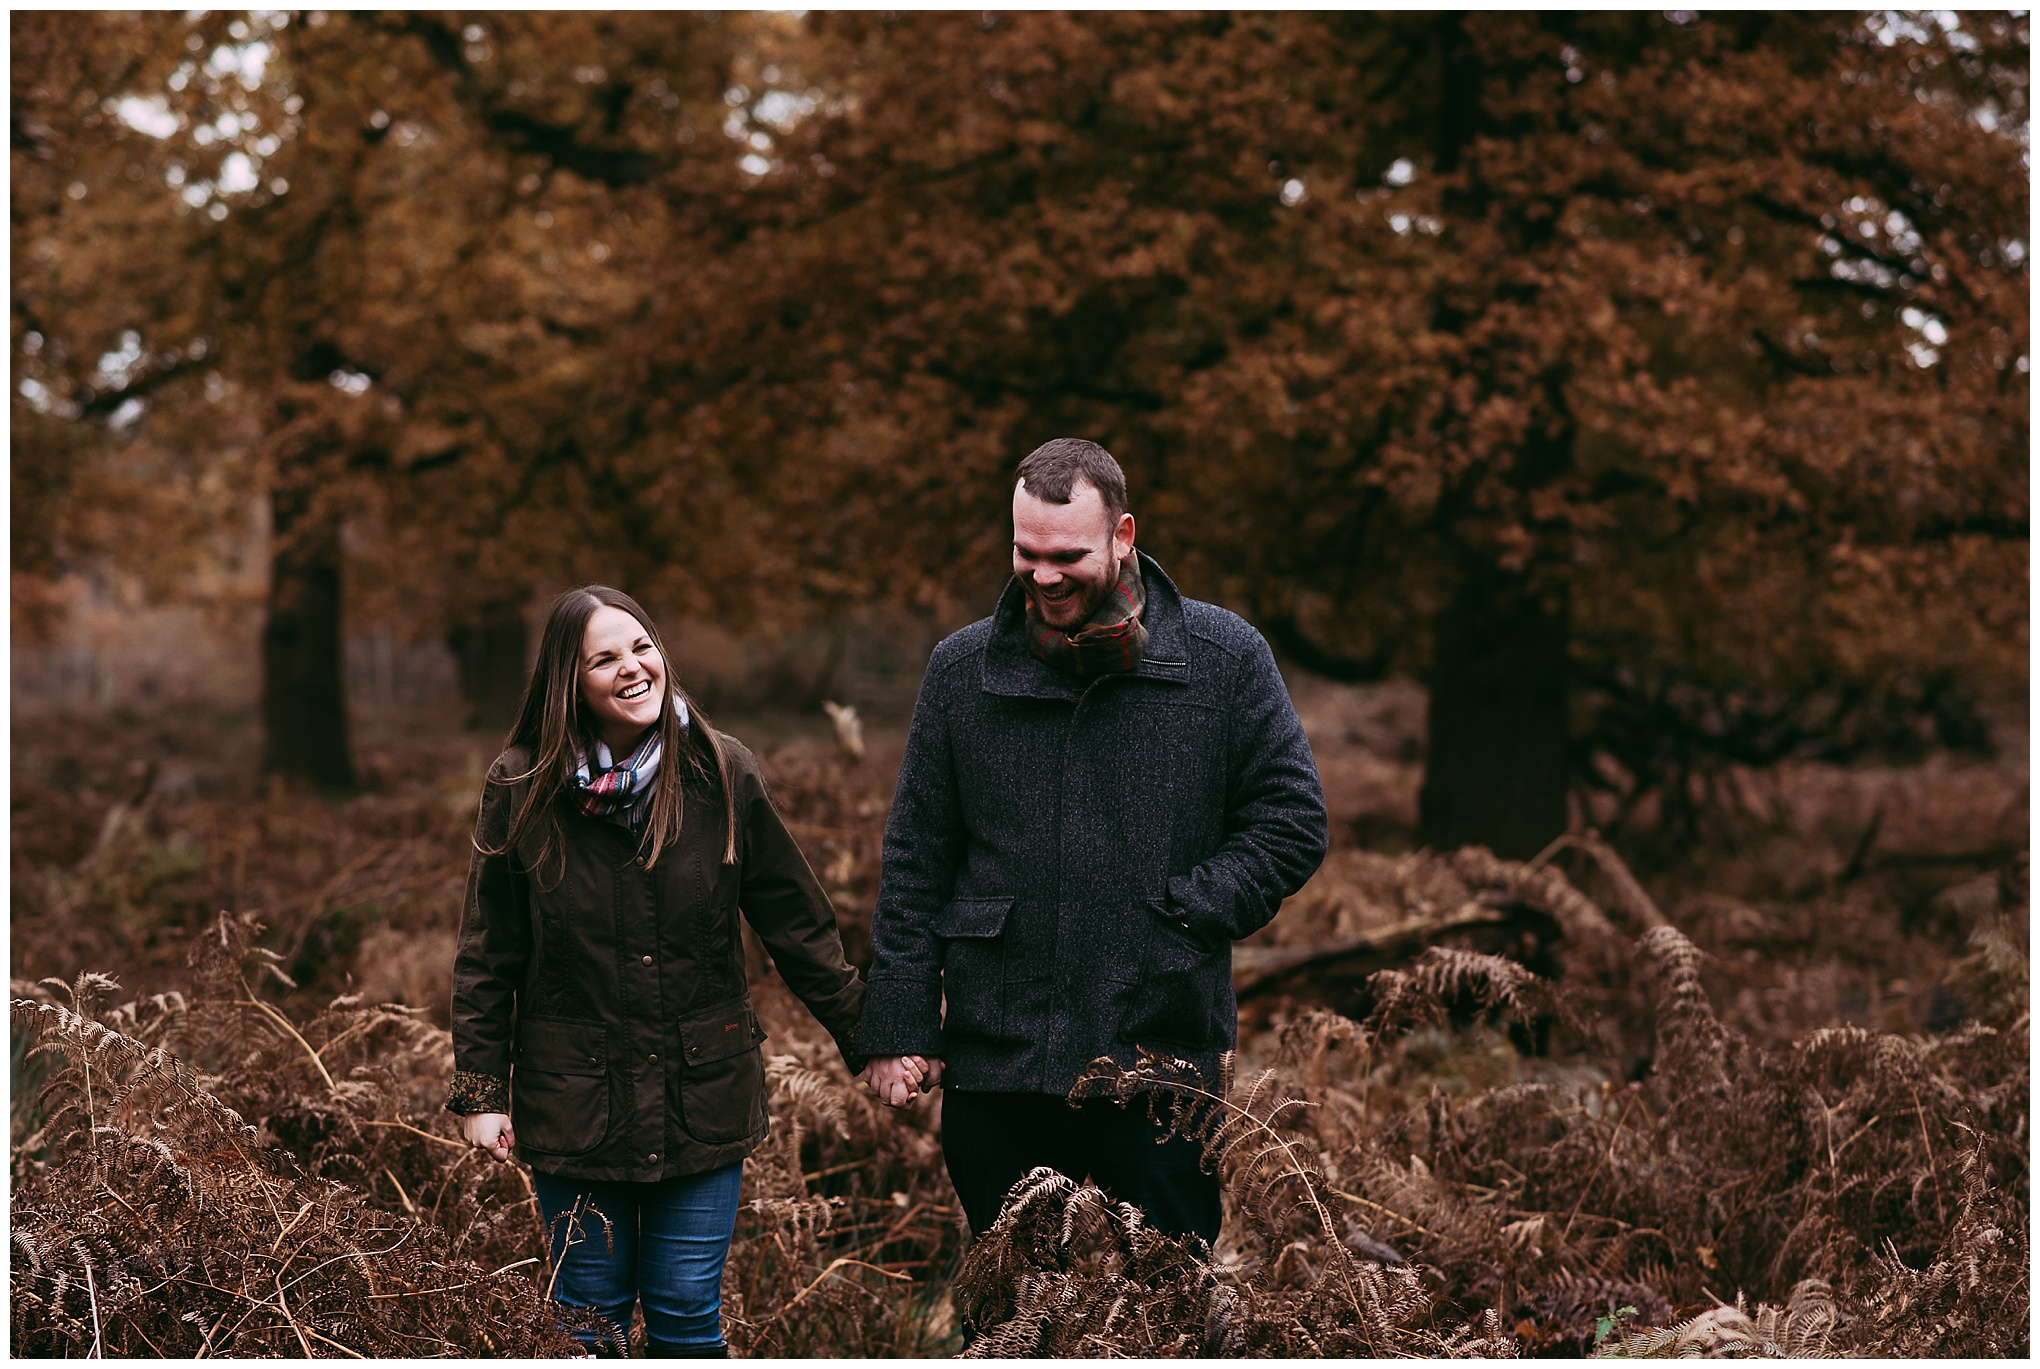 Lifestyle photo shoot at Dunham Massey with couple